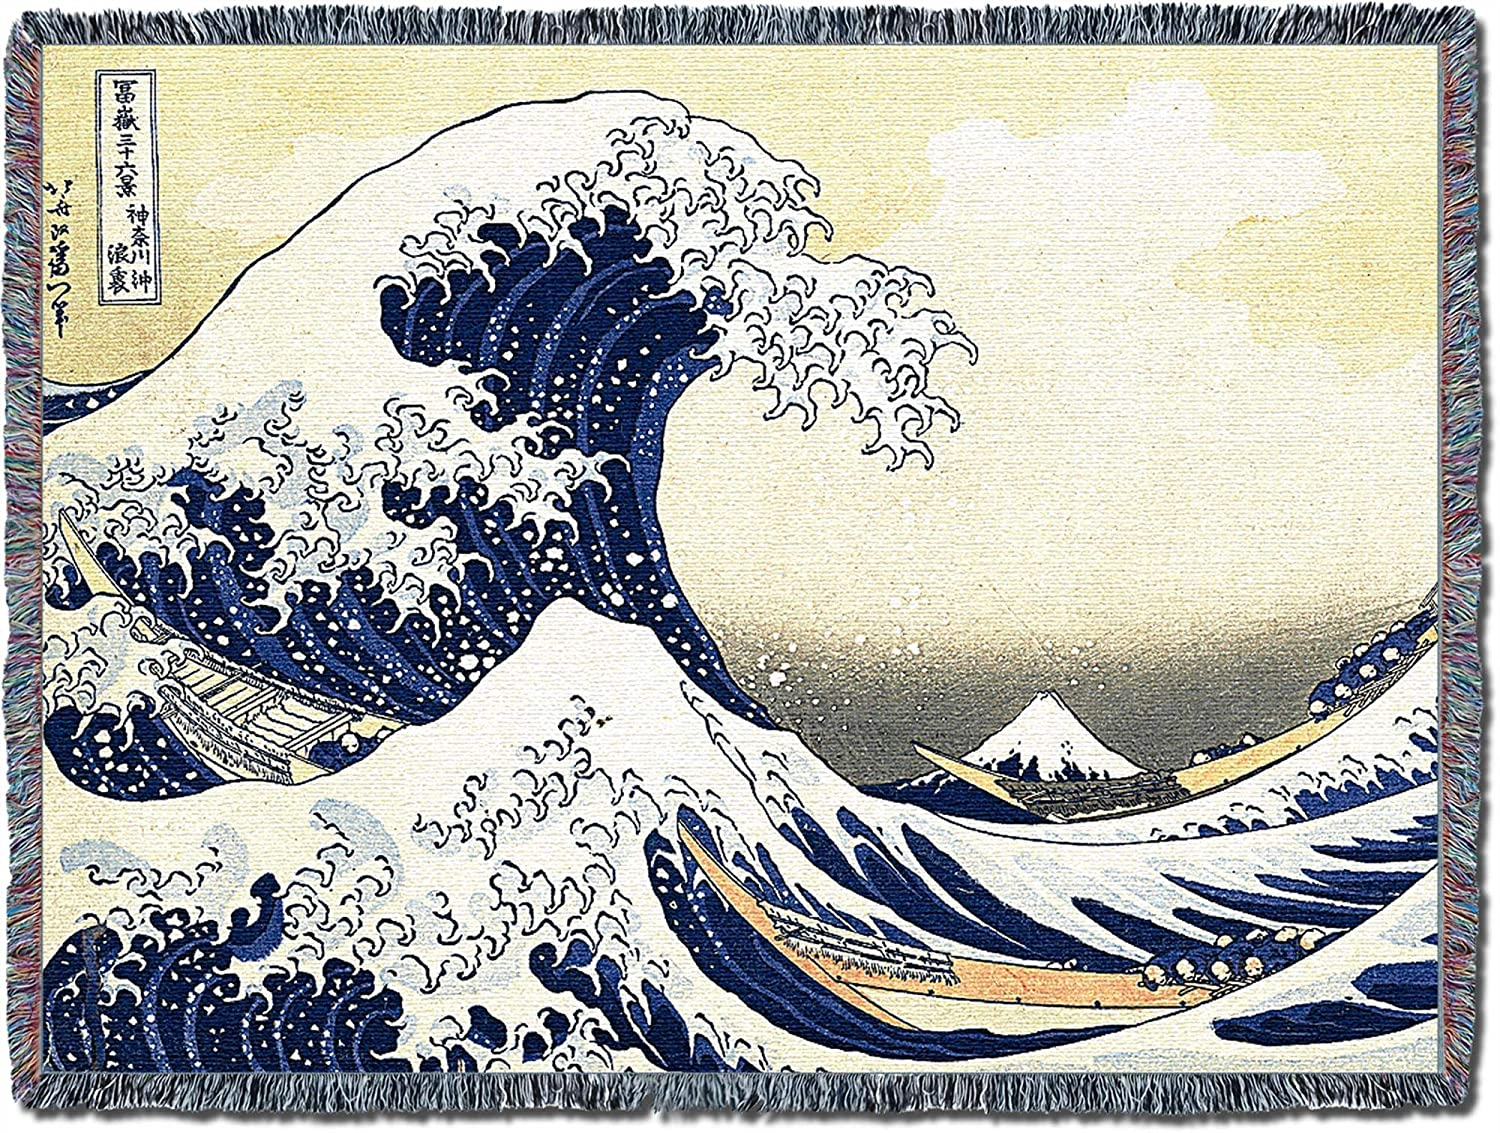 Pure Country Weavers Great Wave of Kanagawa Large Soft Comforting and Throw Blanket with Artistic Textured Design Cotton USA 72x54 Cotton for Mother Daughter Father Son